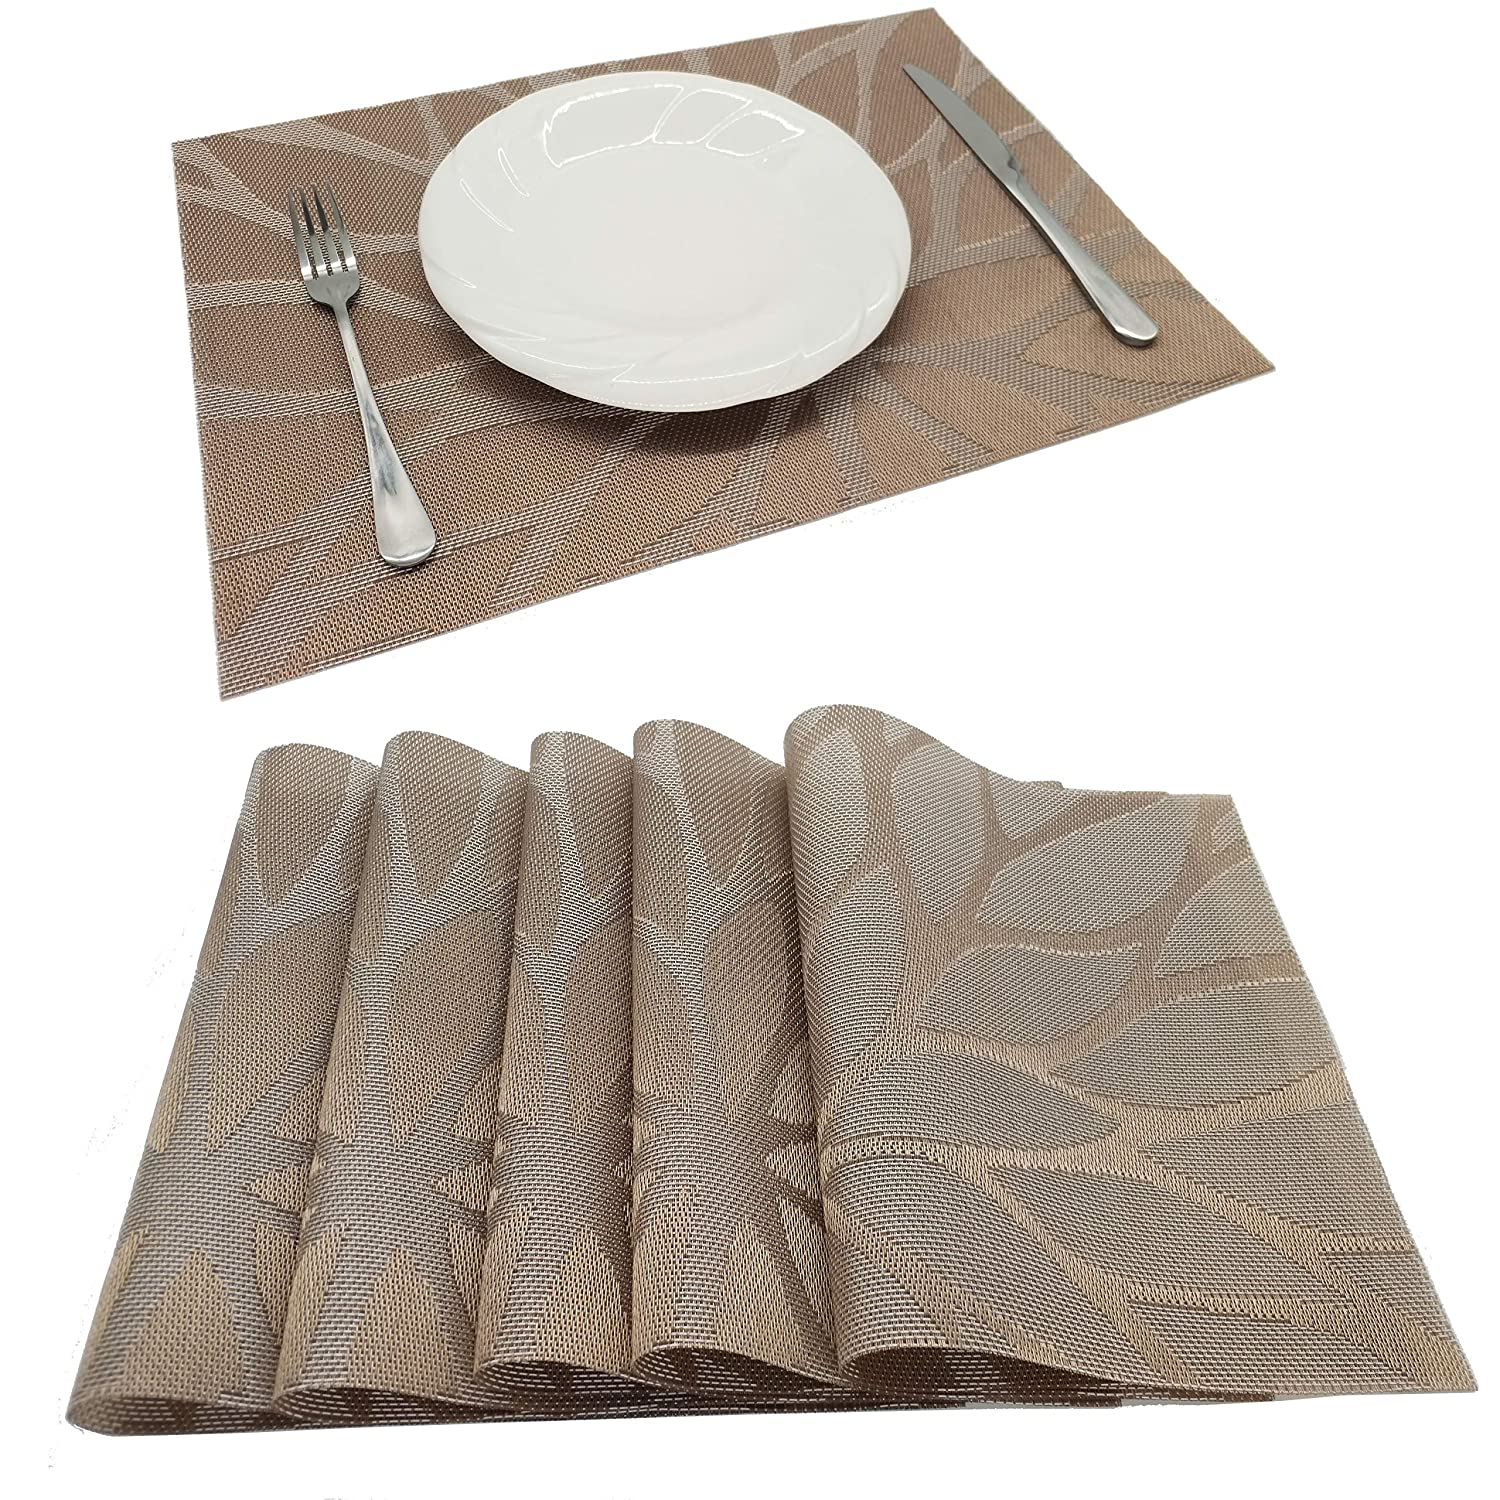 Tennove Placemats Set of 6, Woven Vinyl Table Mats PVC Placemats Kitchen Dining Table Decoration (Flower-Brown)